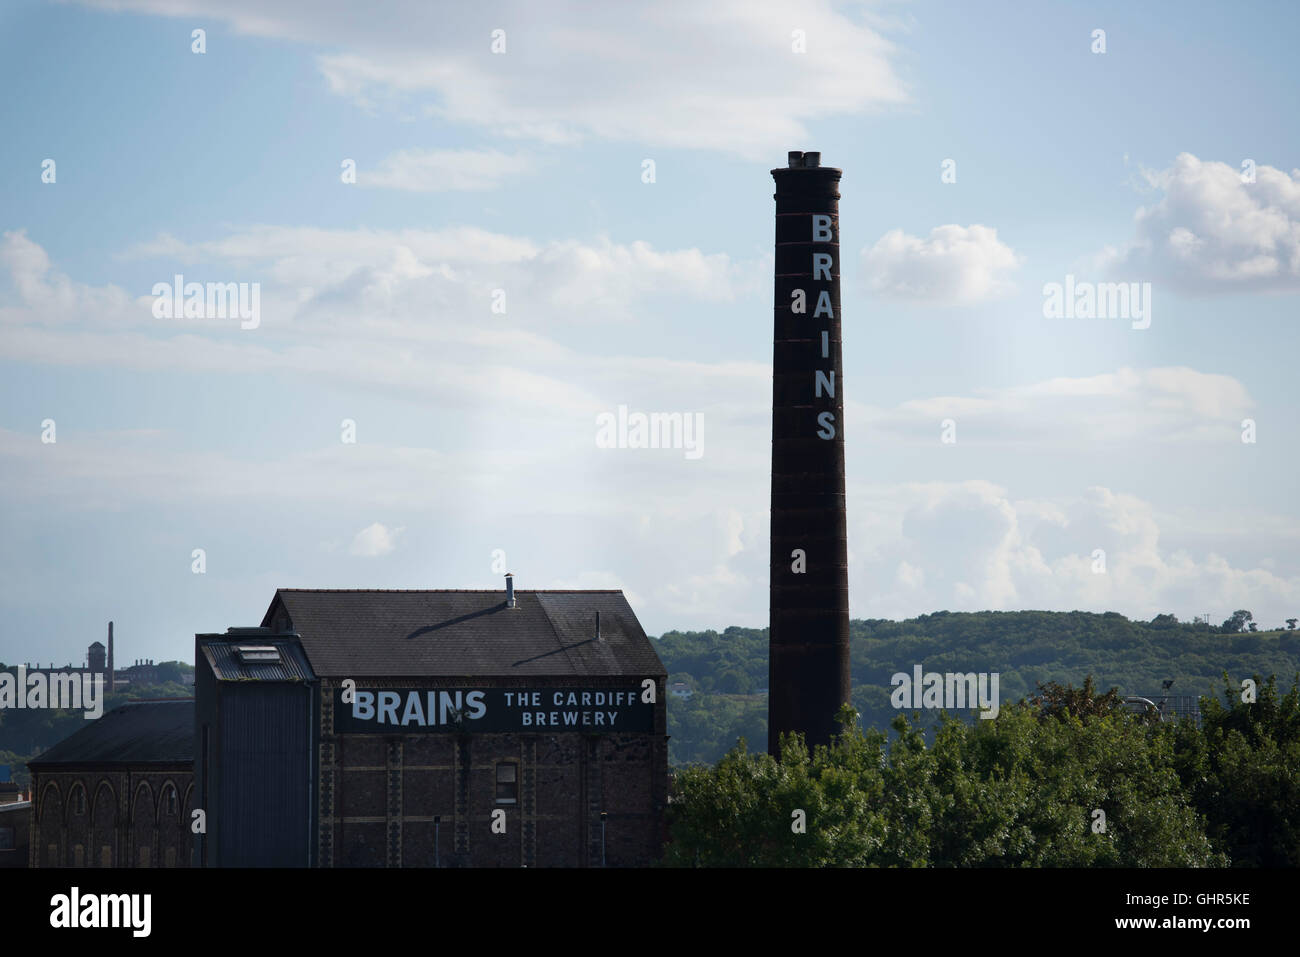 Brains Brewery in Cardiff, south Wales. - Stock Image